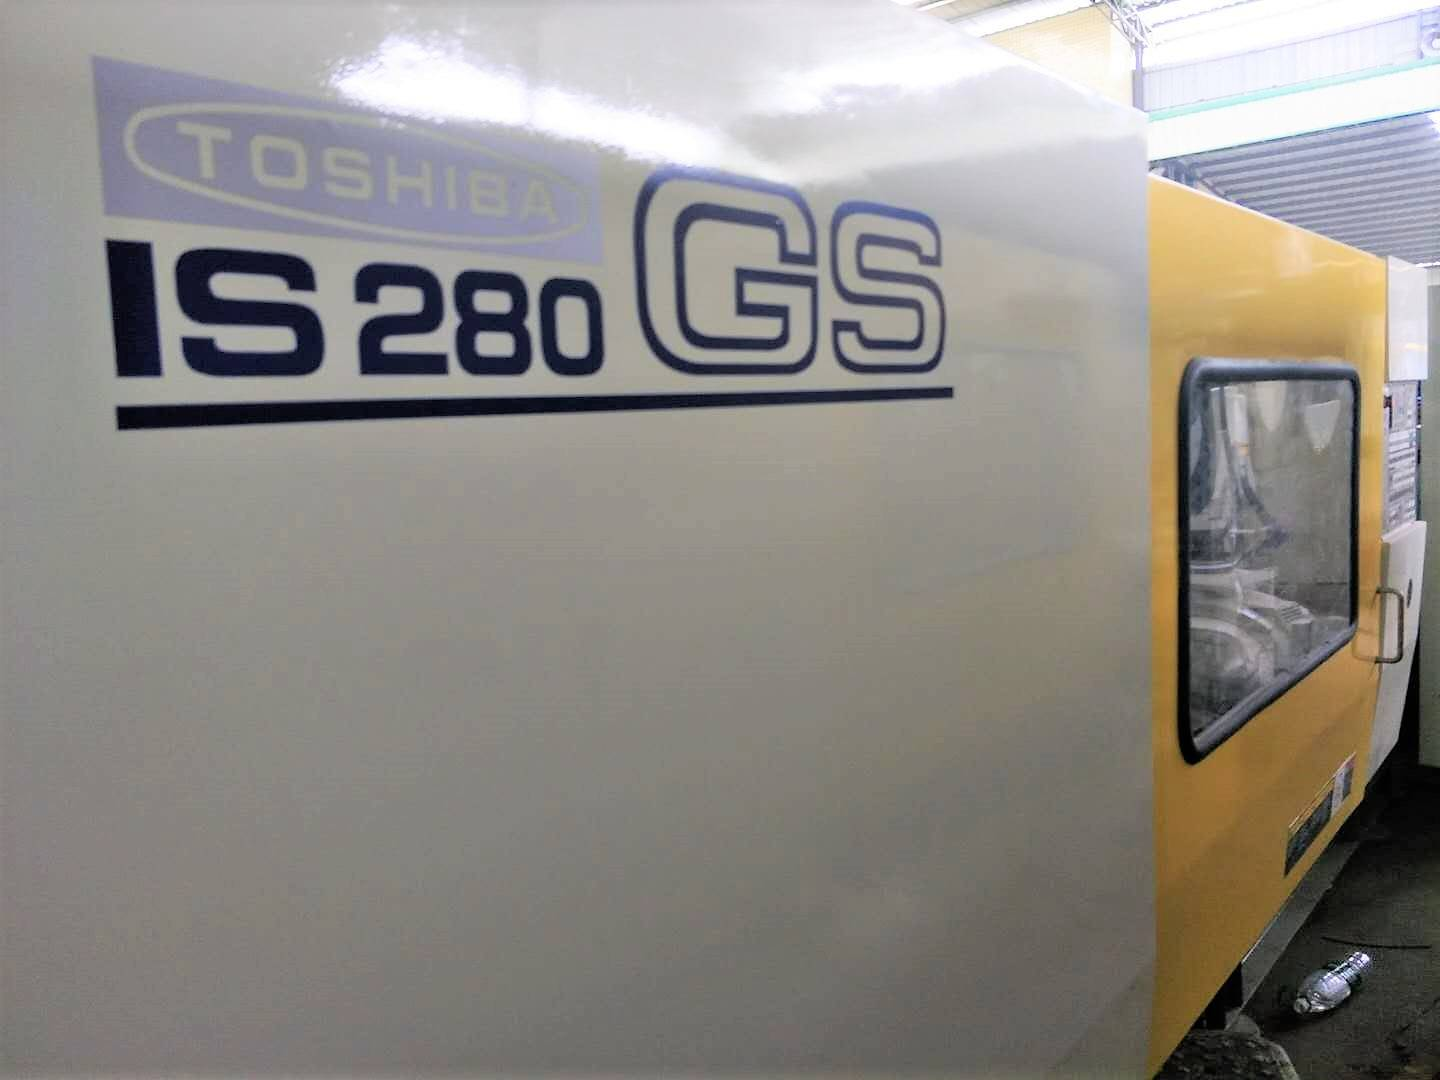 Toshiba 280t (IS280GS) Used Plastic Injection Molding Machine Featured Image